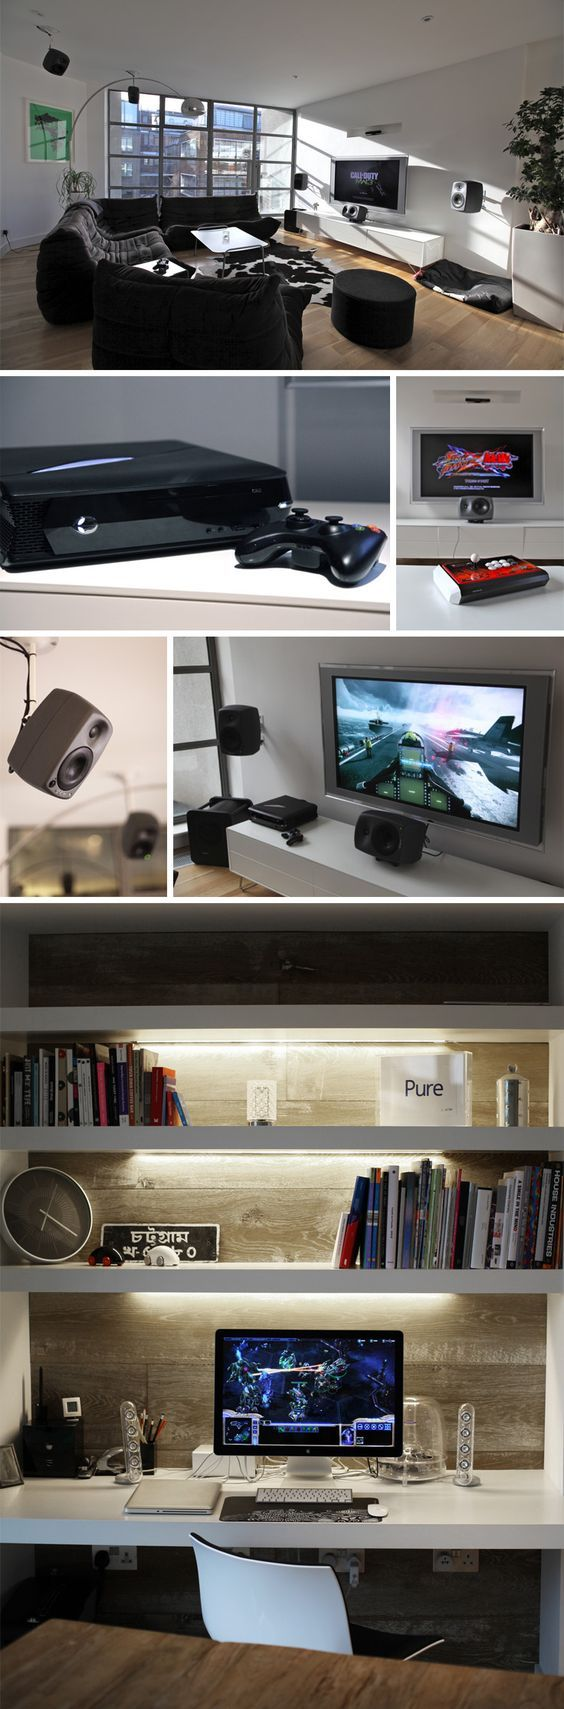 London Gaming Flat via NeoGAF user Chittagong. Winner of the 2013 Show us your gaming setup thread.